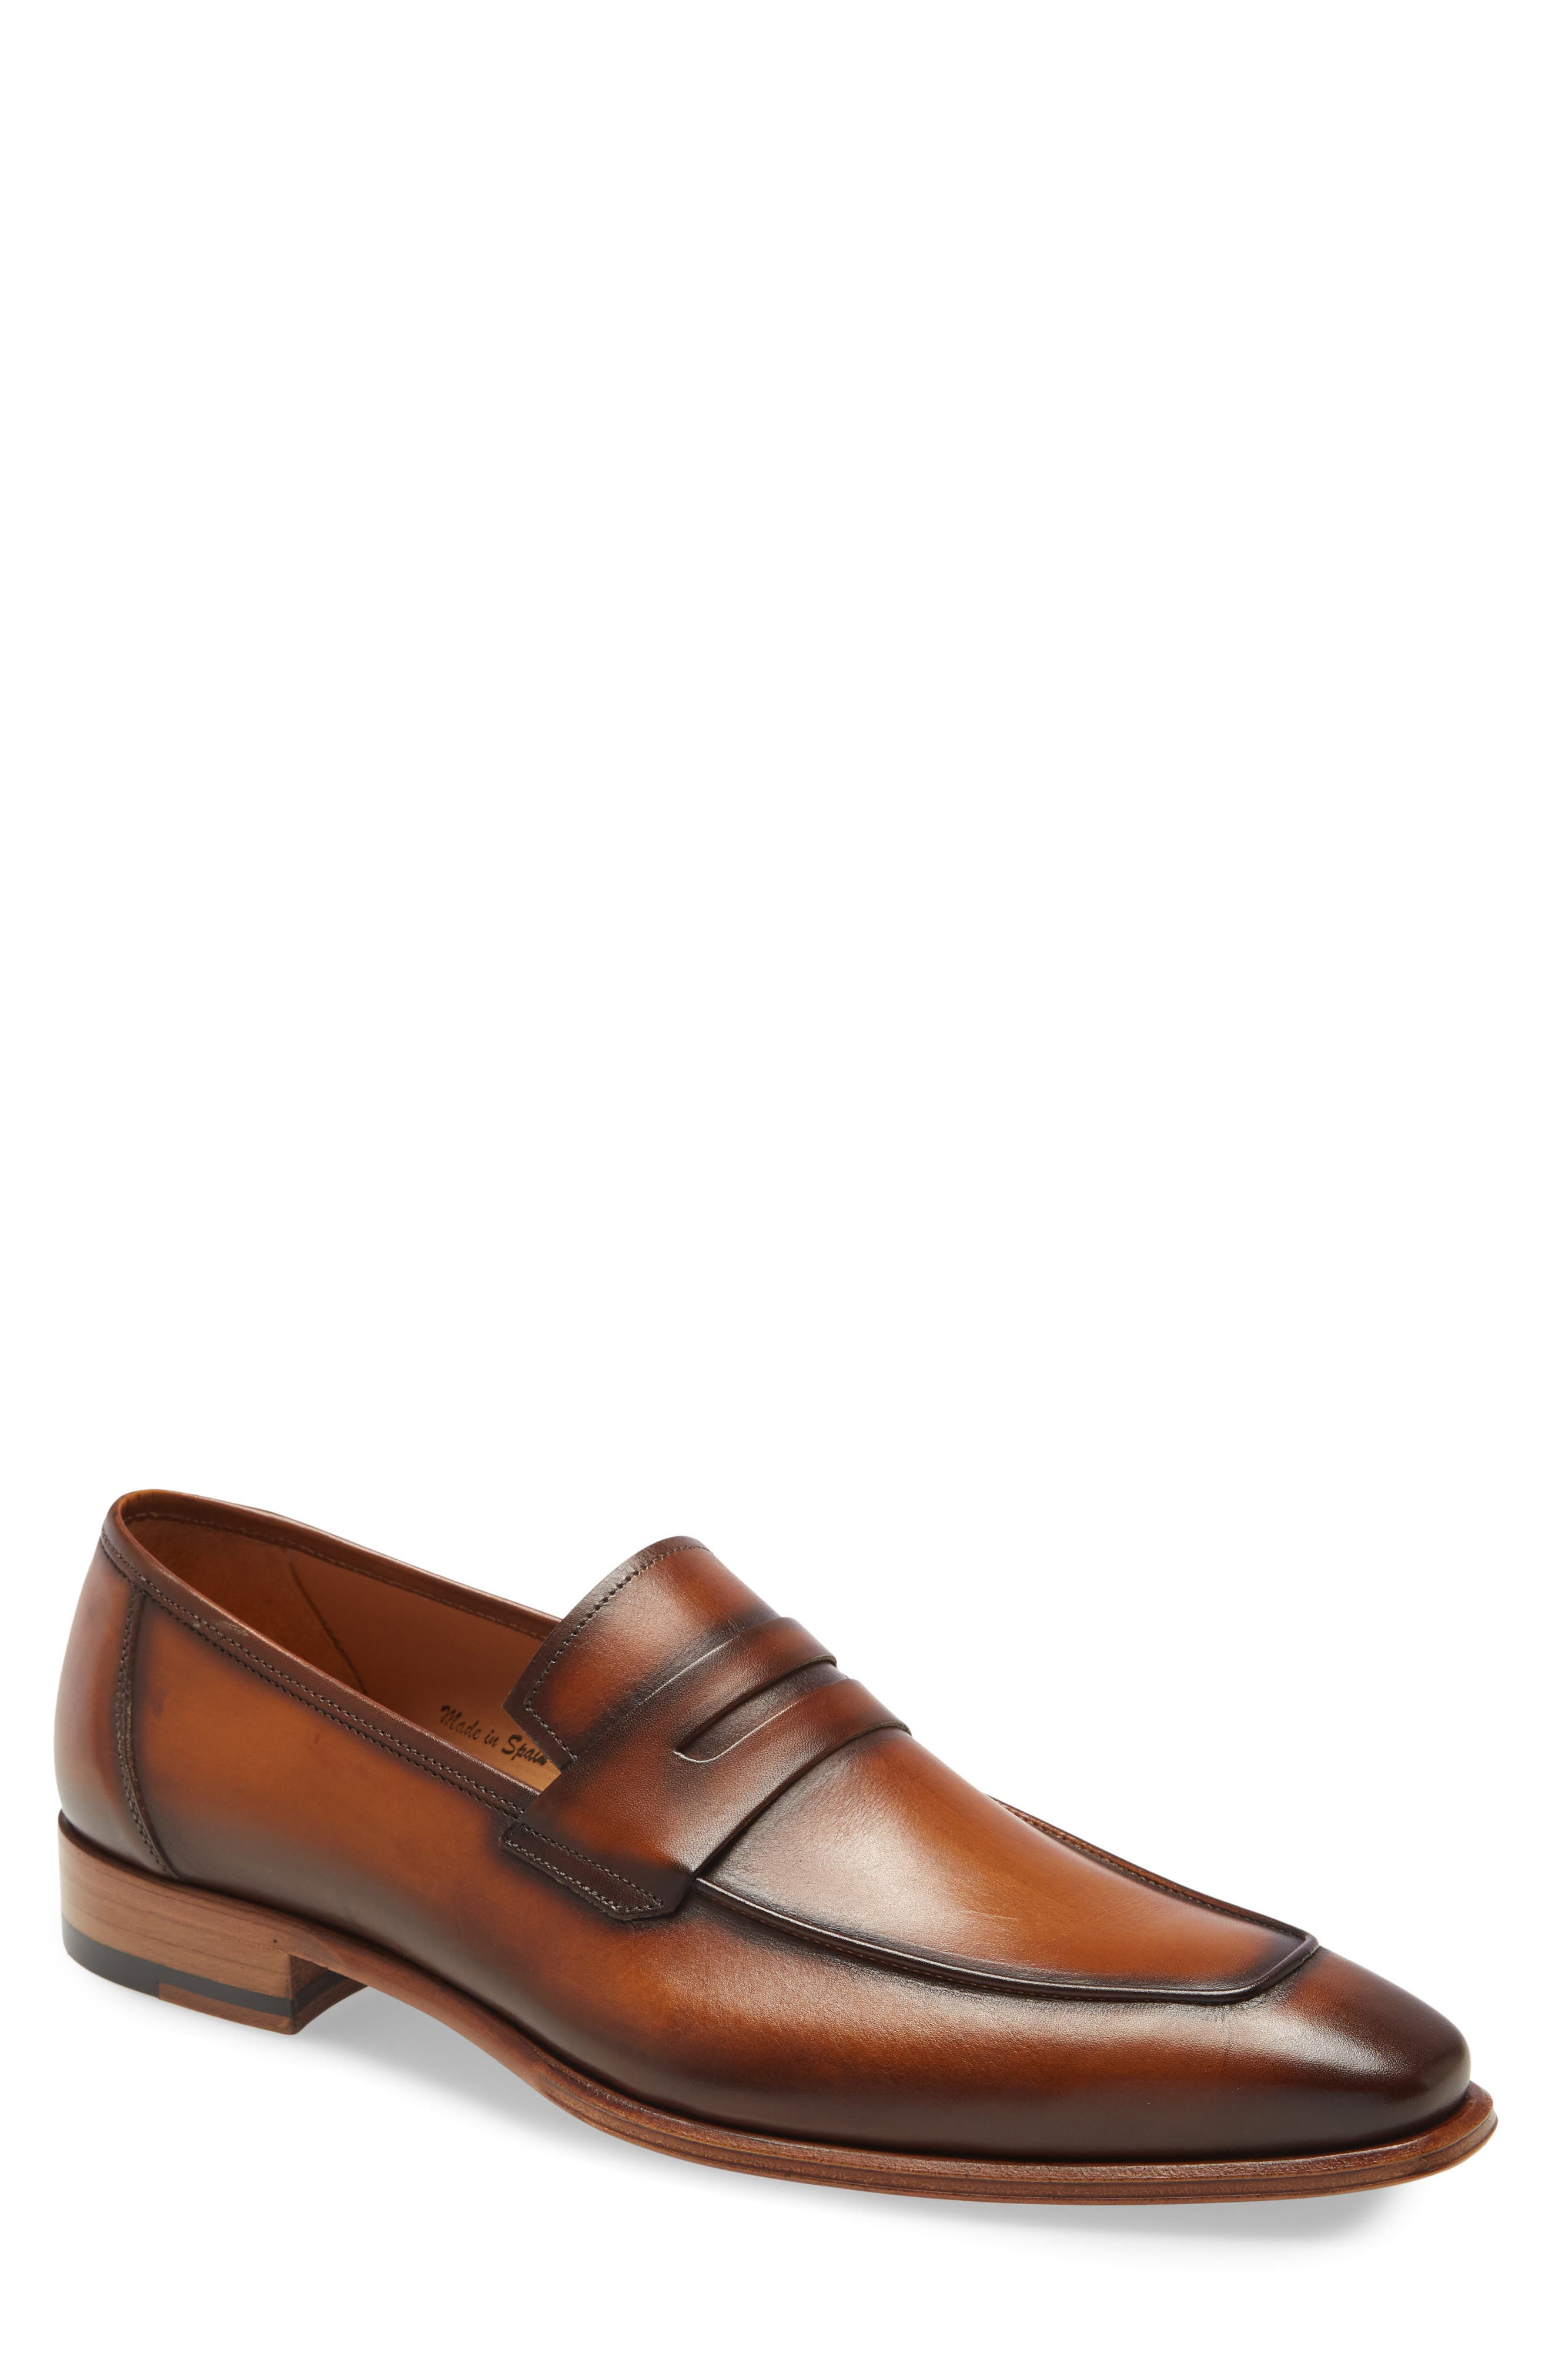 Ginza Penny Loafer